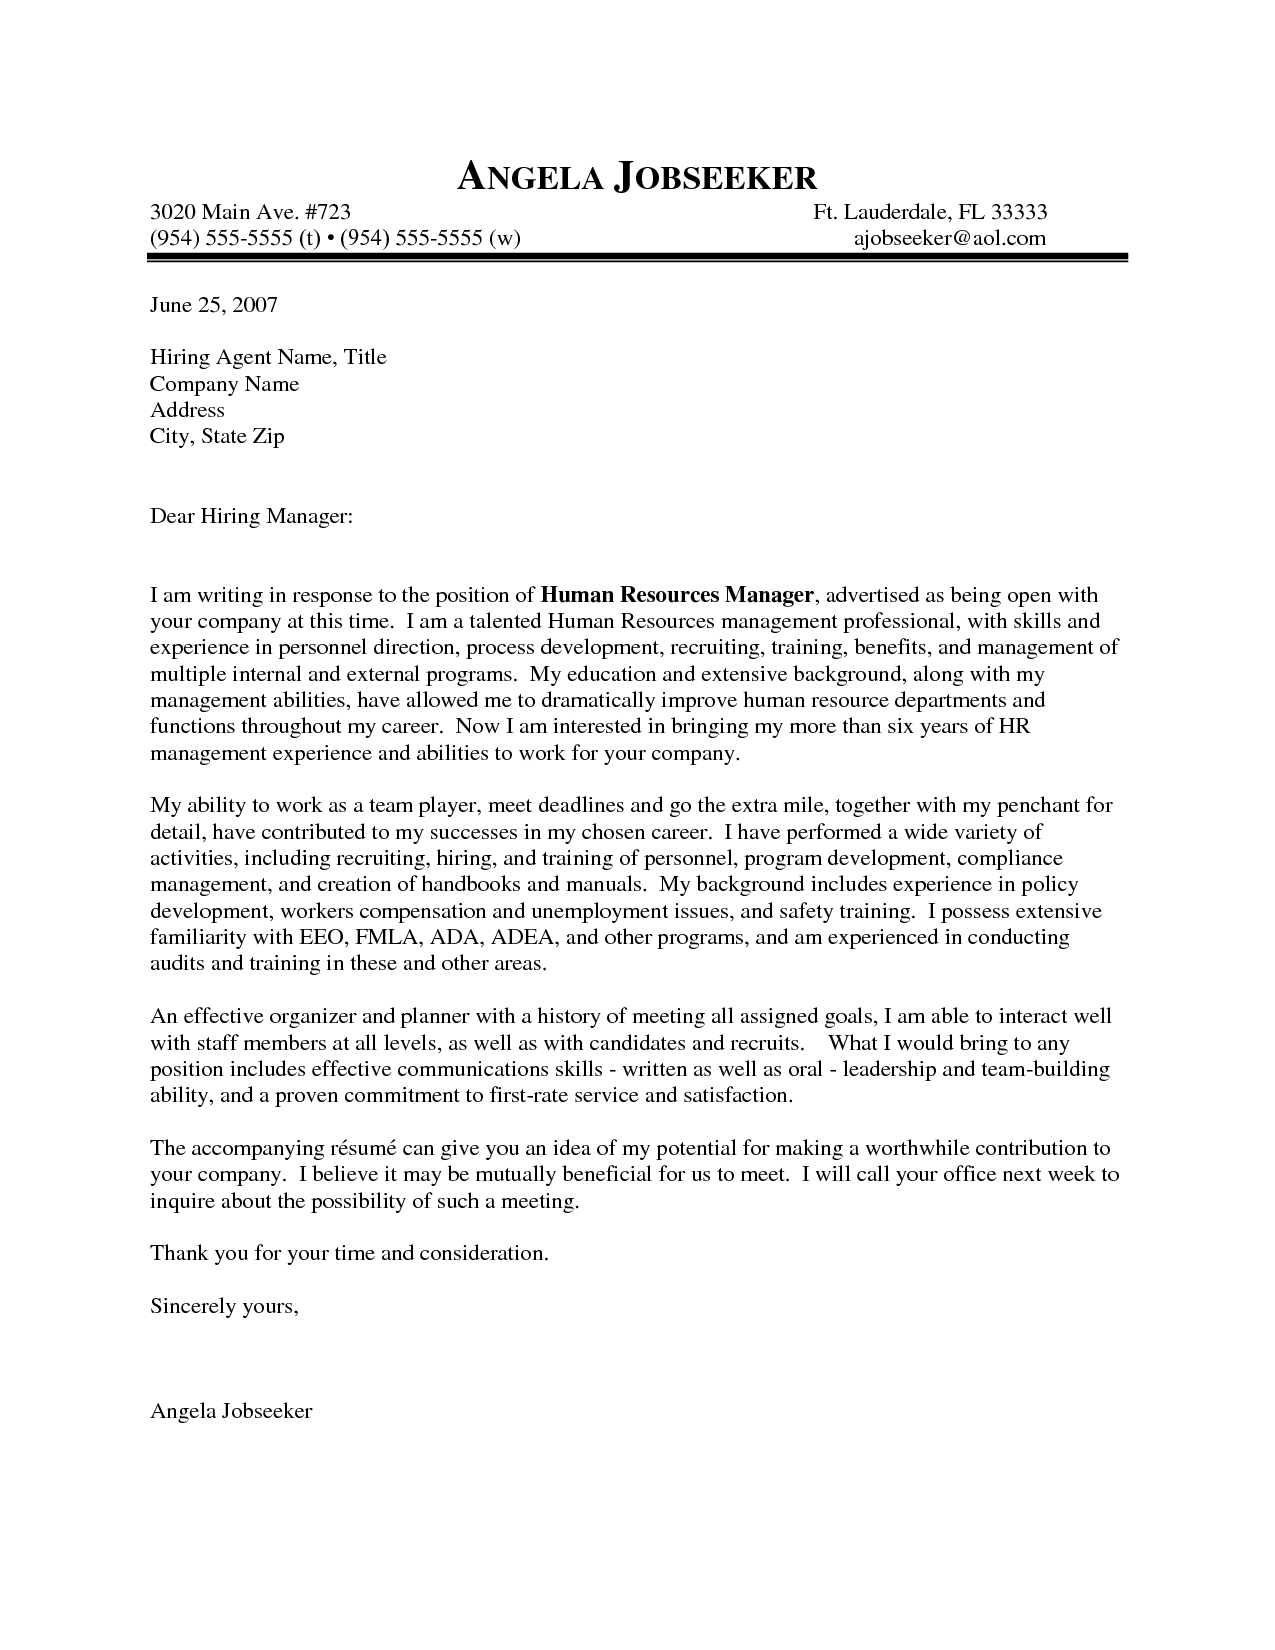 Outstanding Cover Letter Examples | HR Manager Cover Letter Example Within Sample Resume Cover Letter